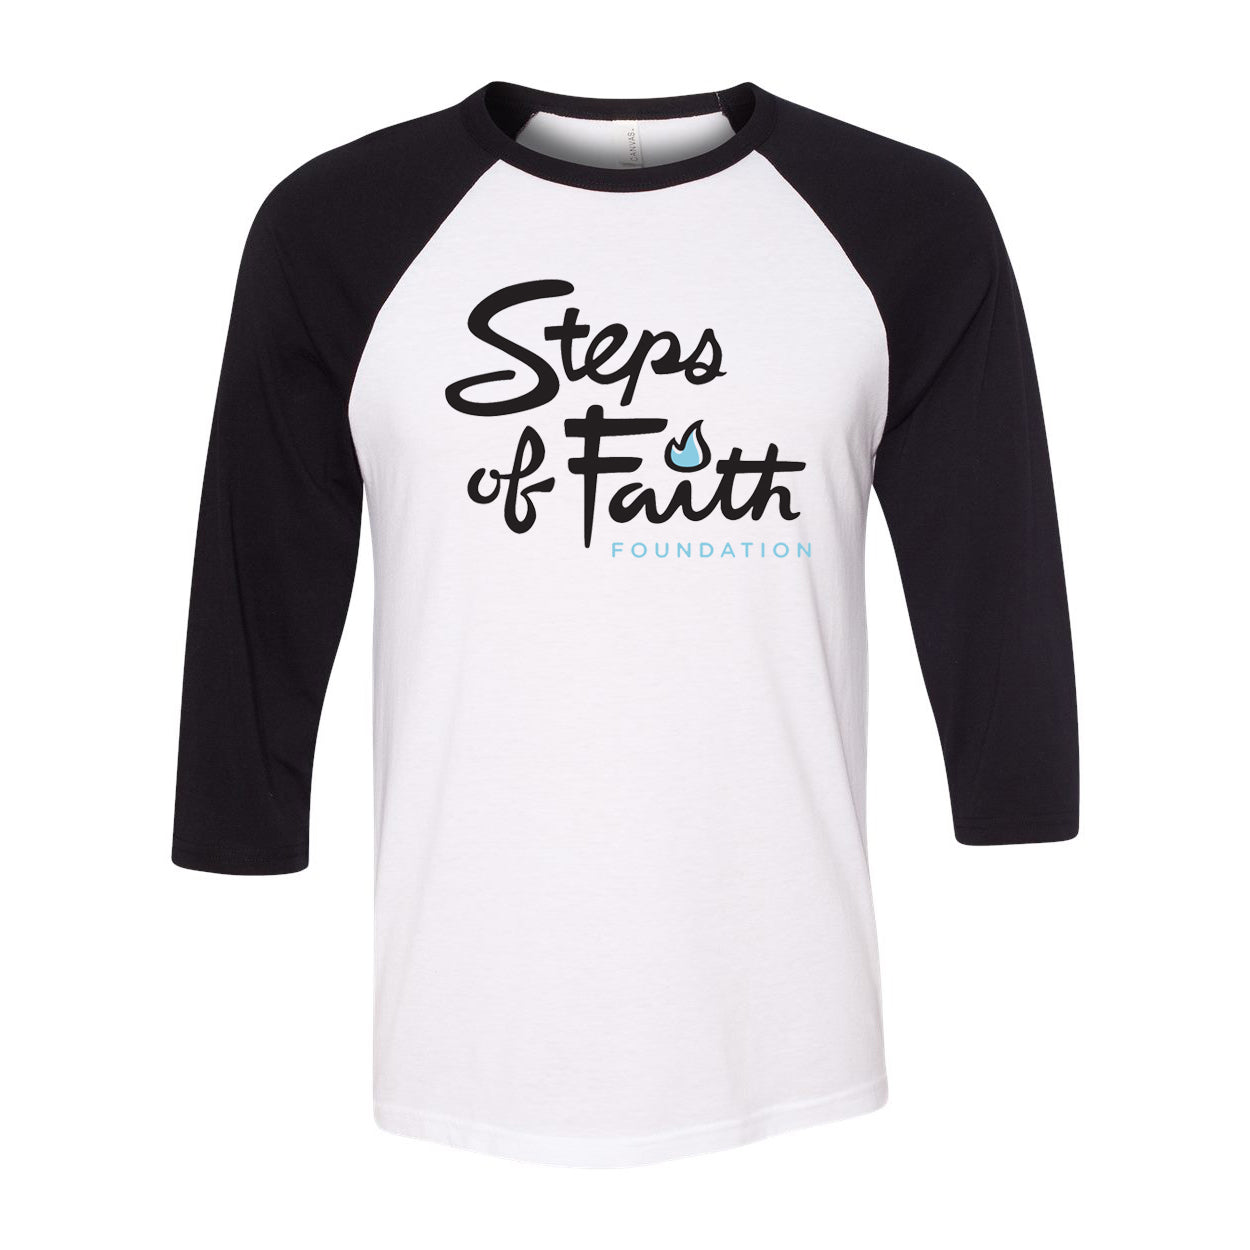 TG! Steps of Faith - Black & White Raglan